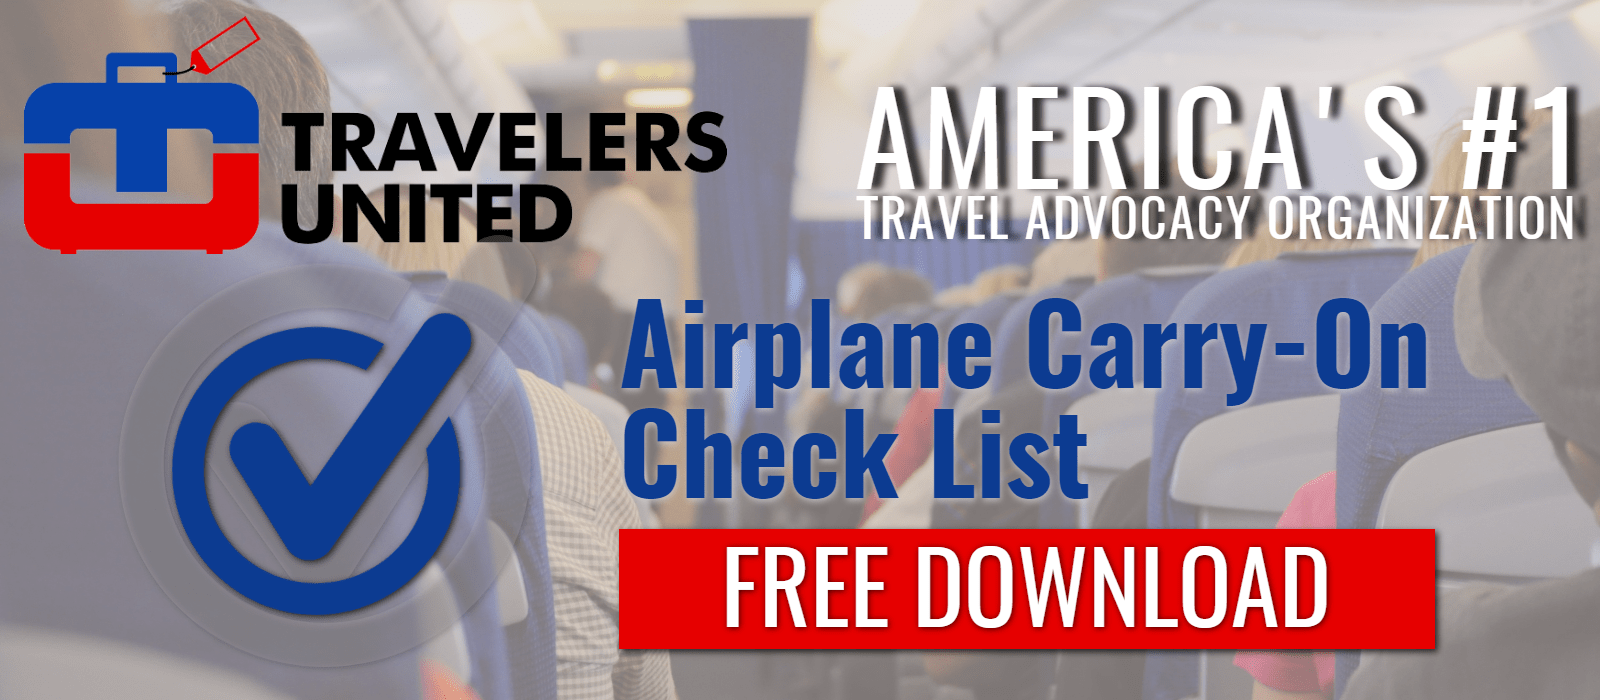 Download Airplane Carry-on Checklist